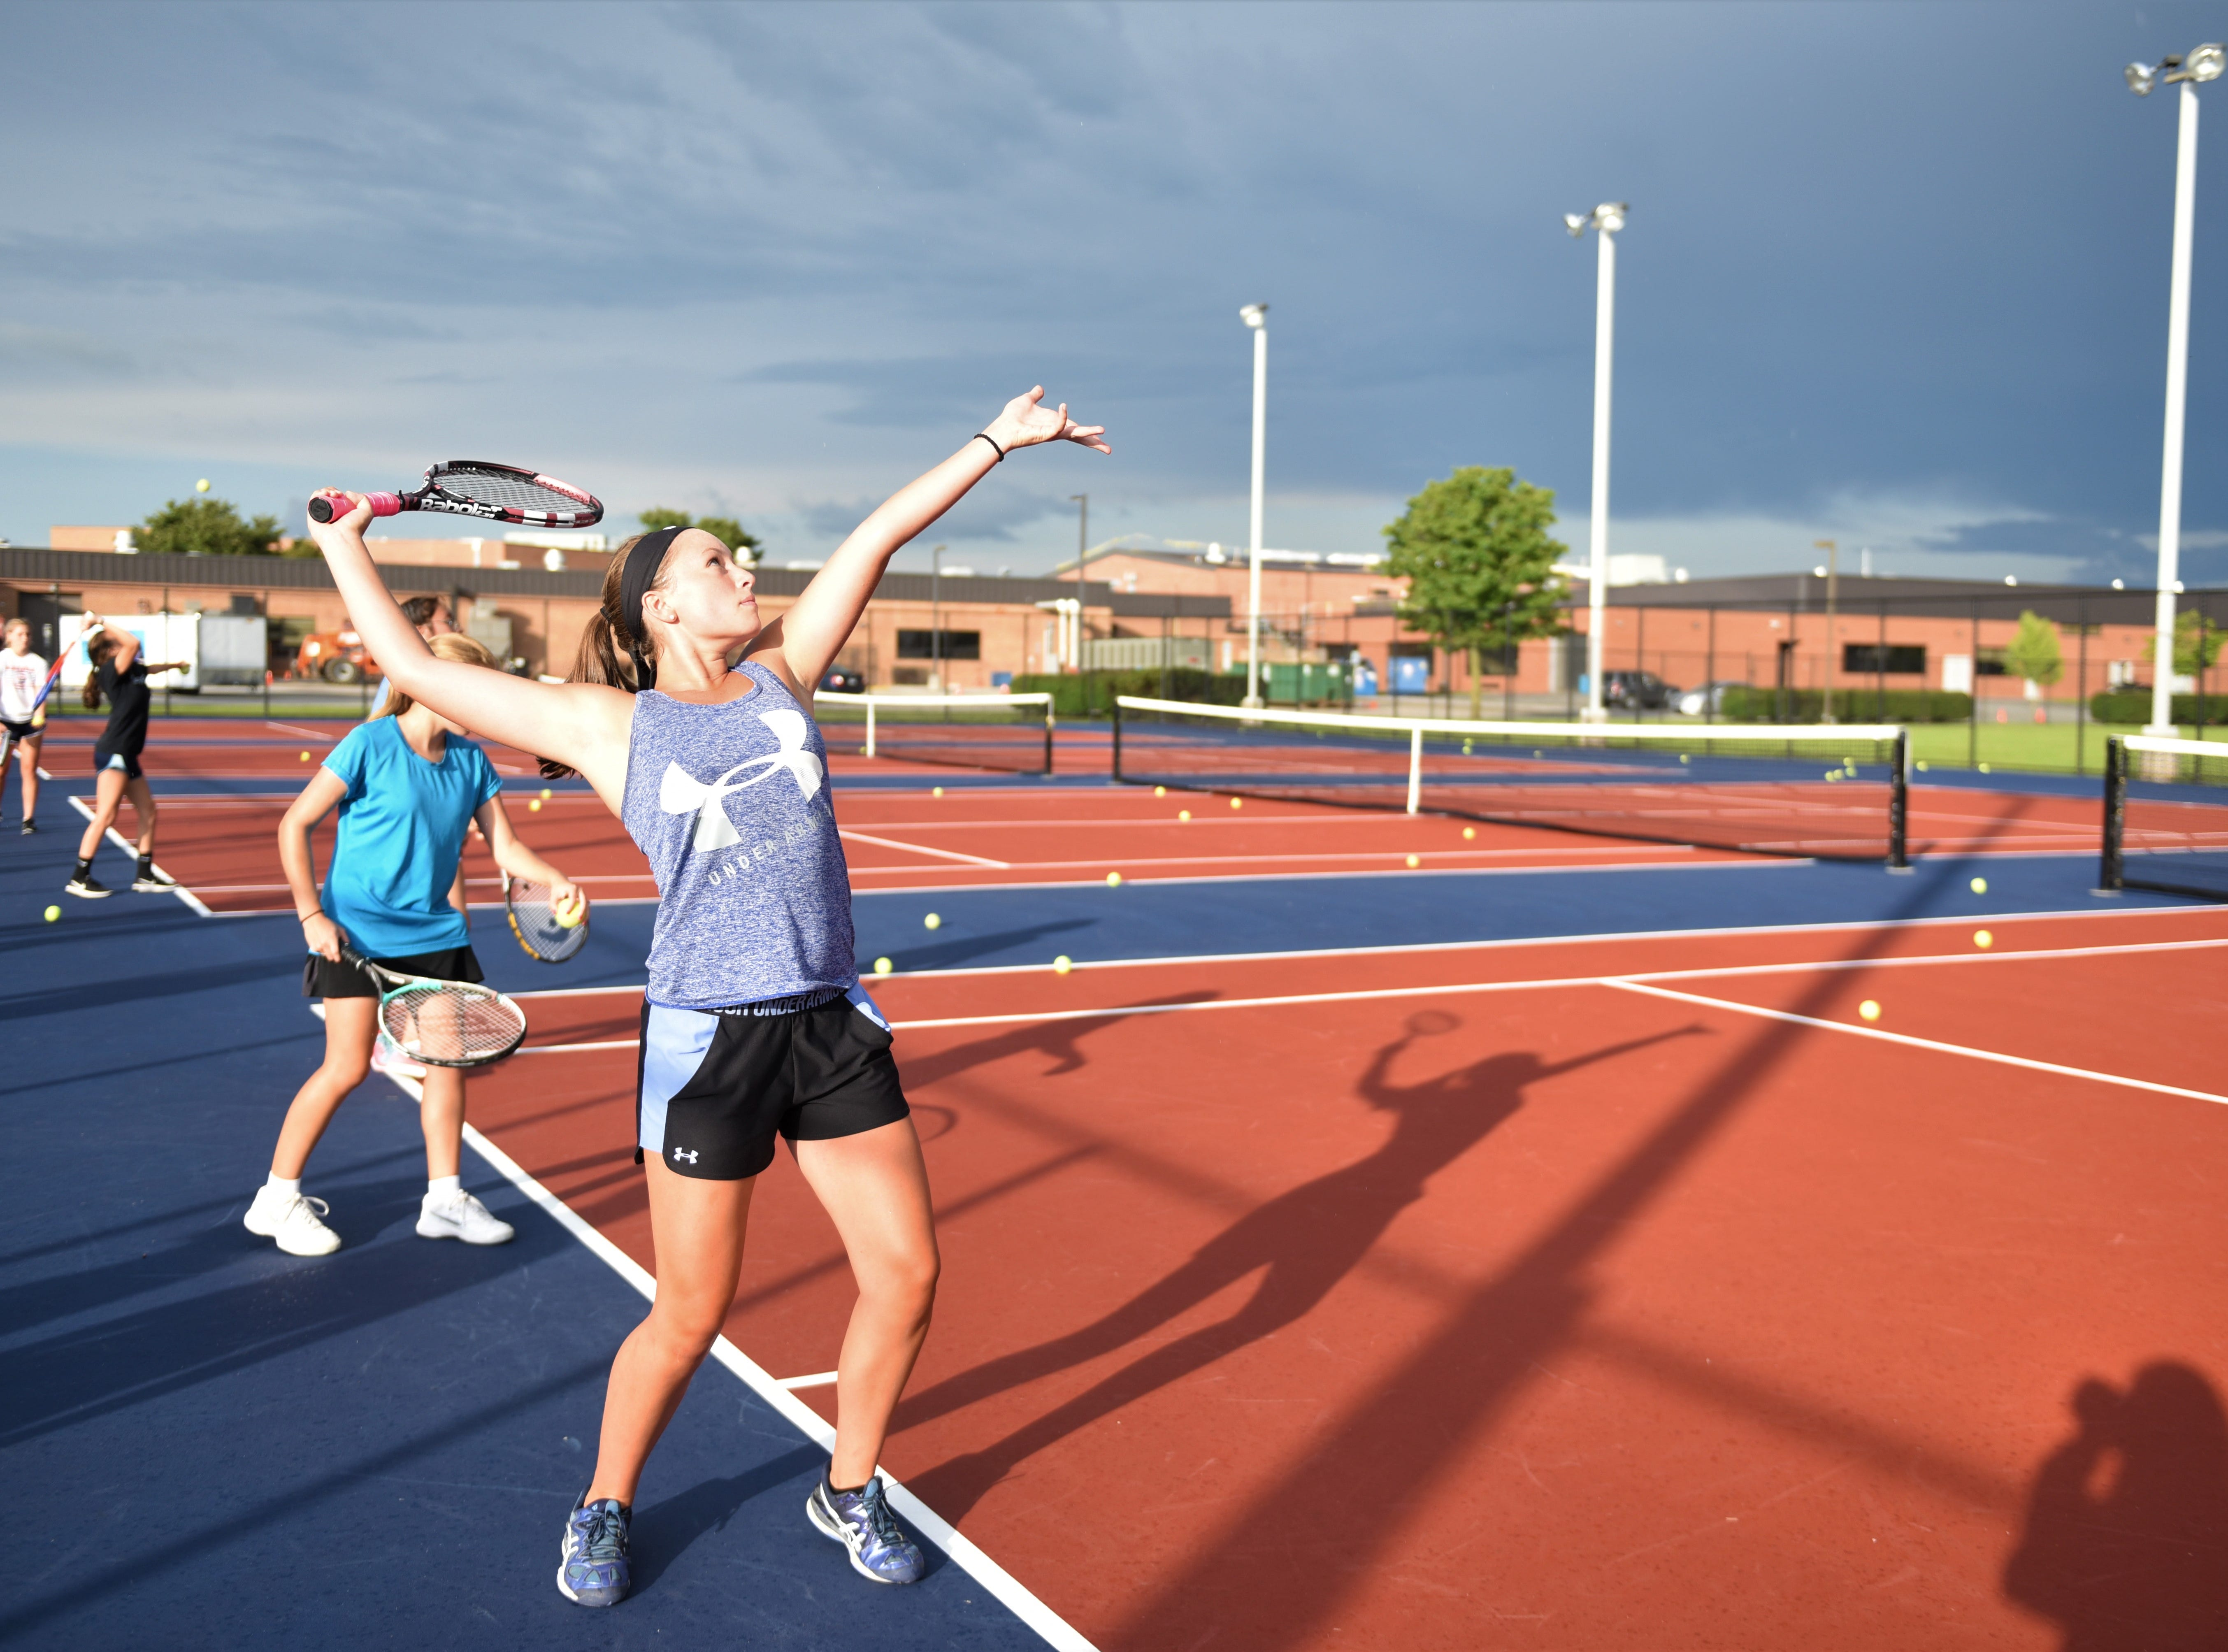 Kasi Conjack, New Oxford tennis junior, is practicing her serve on the first day of fall sports, Aug. 13.